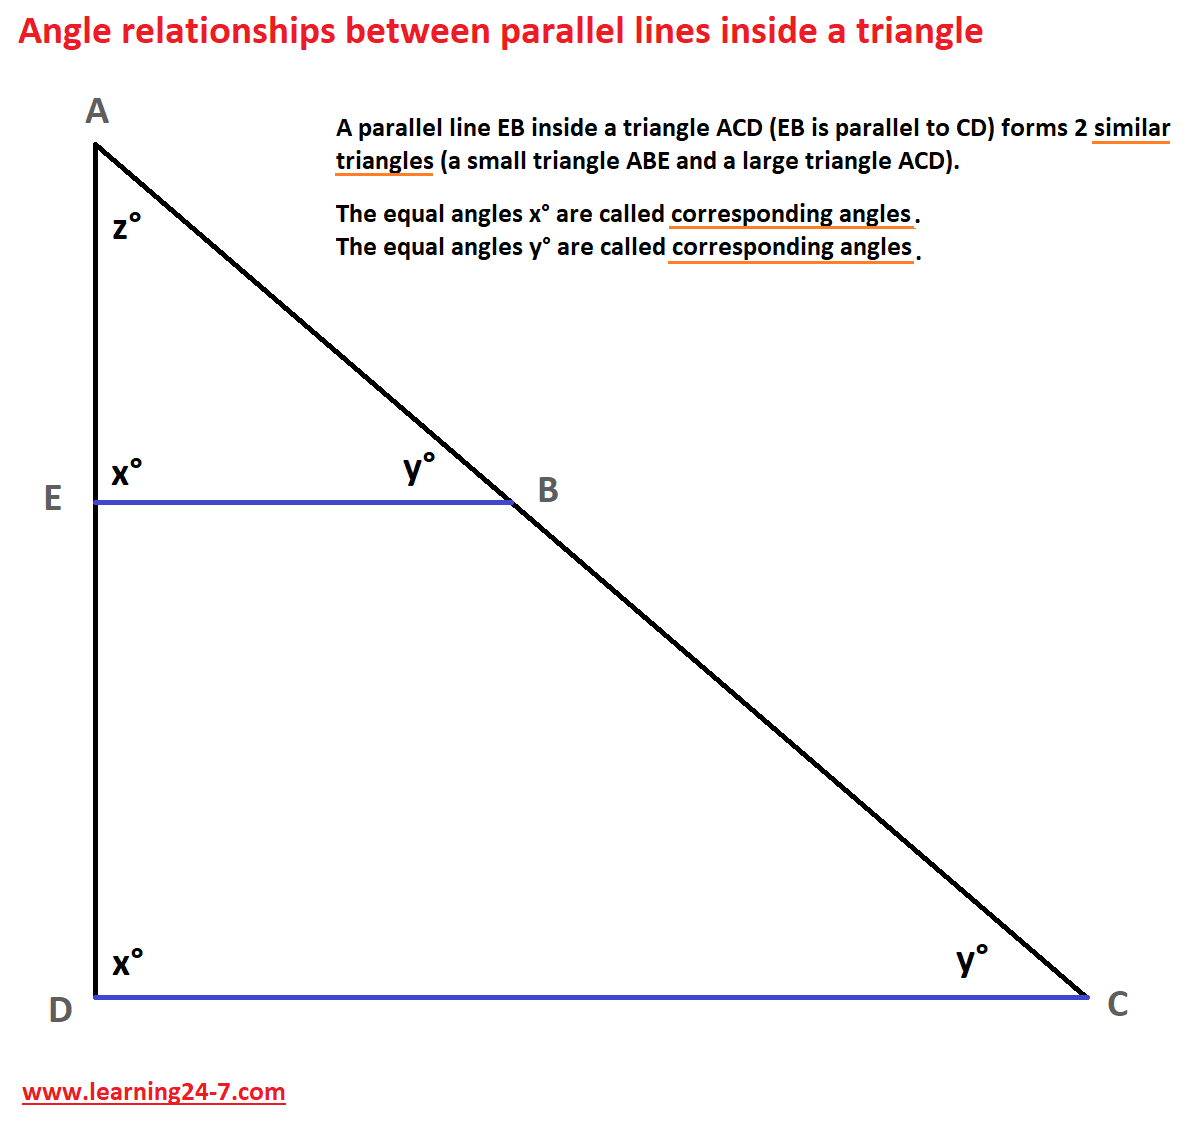 Angle relationships between parallel lines inside a triangle- corresponding angles